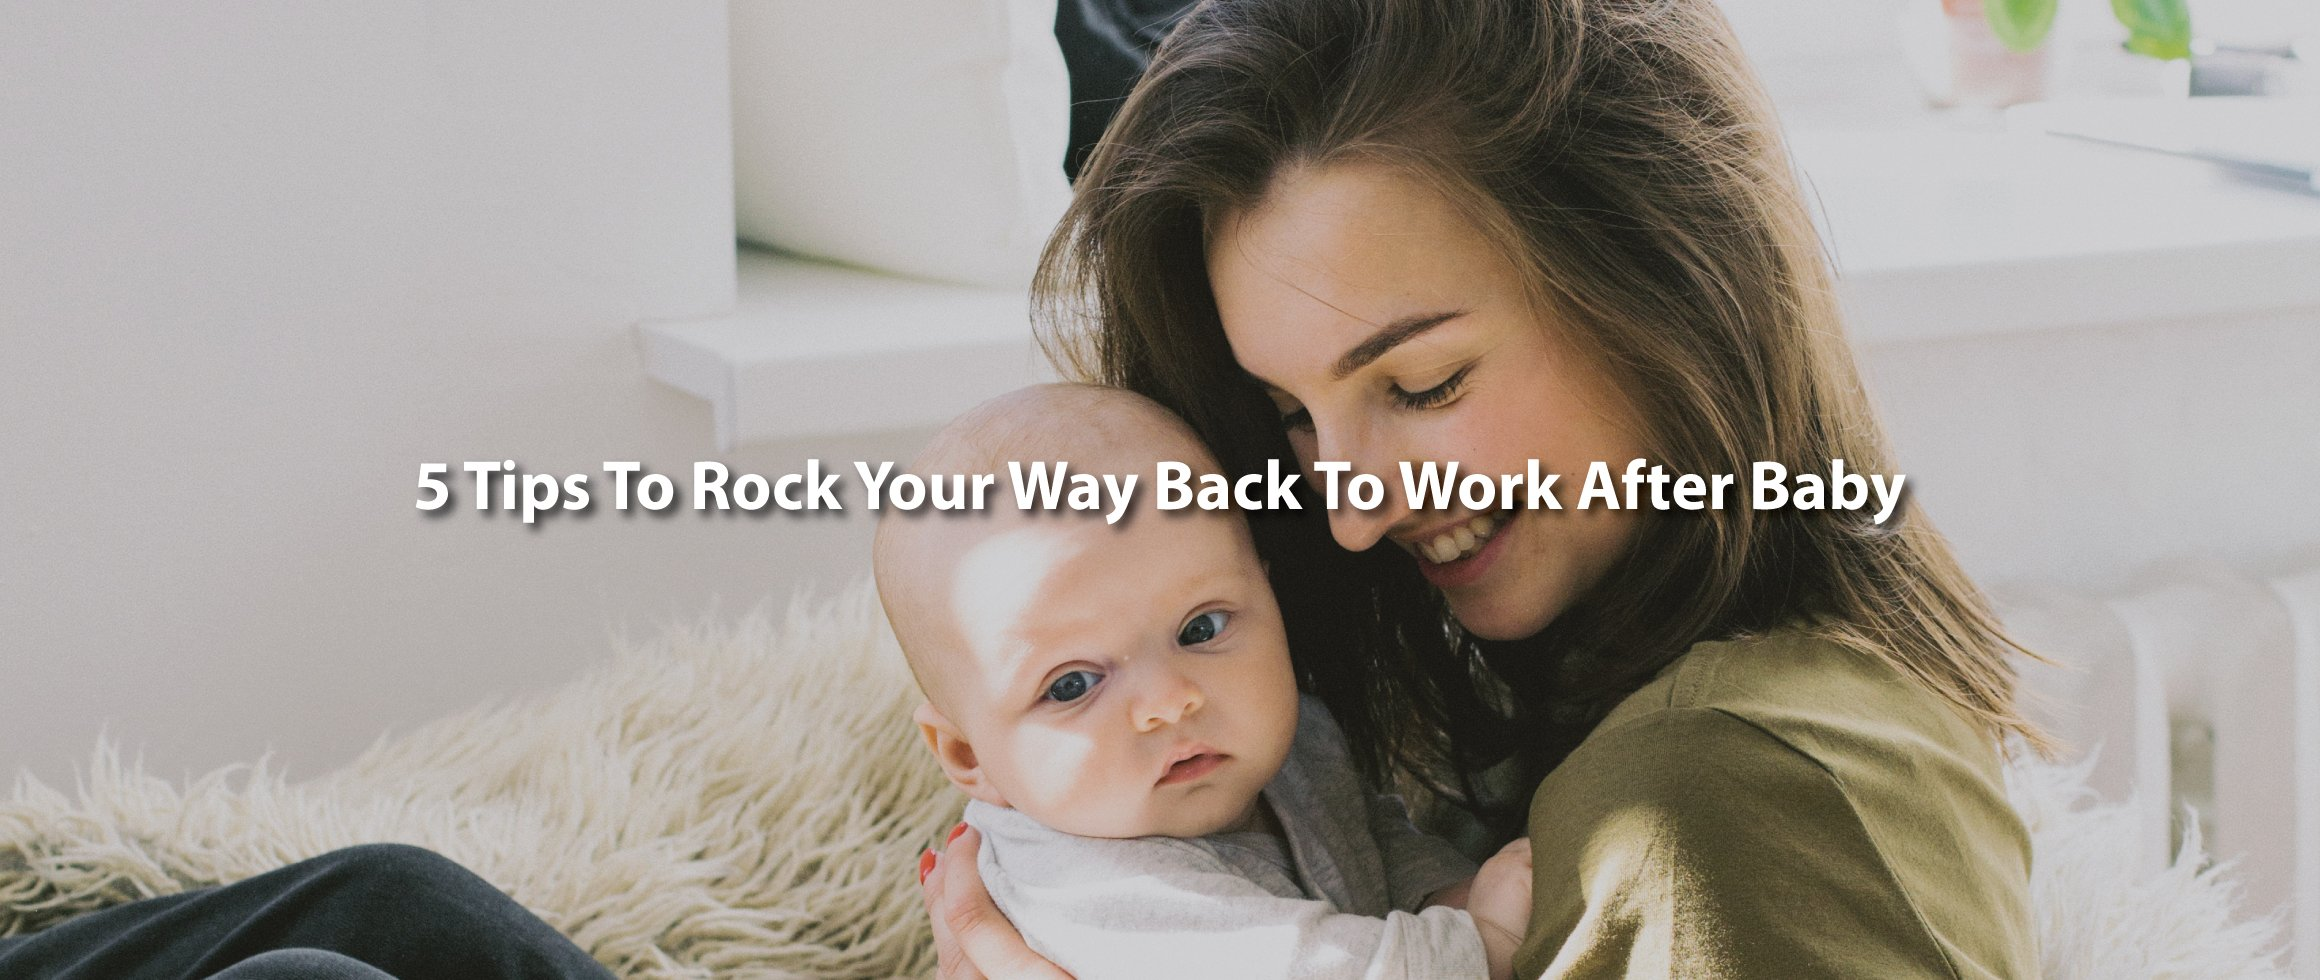 work after baby